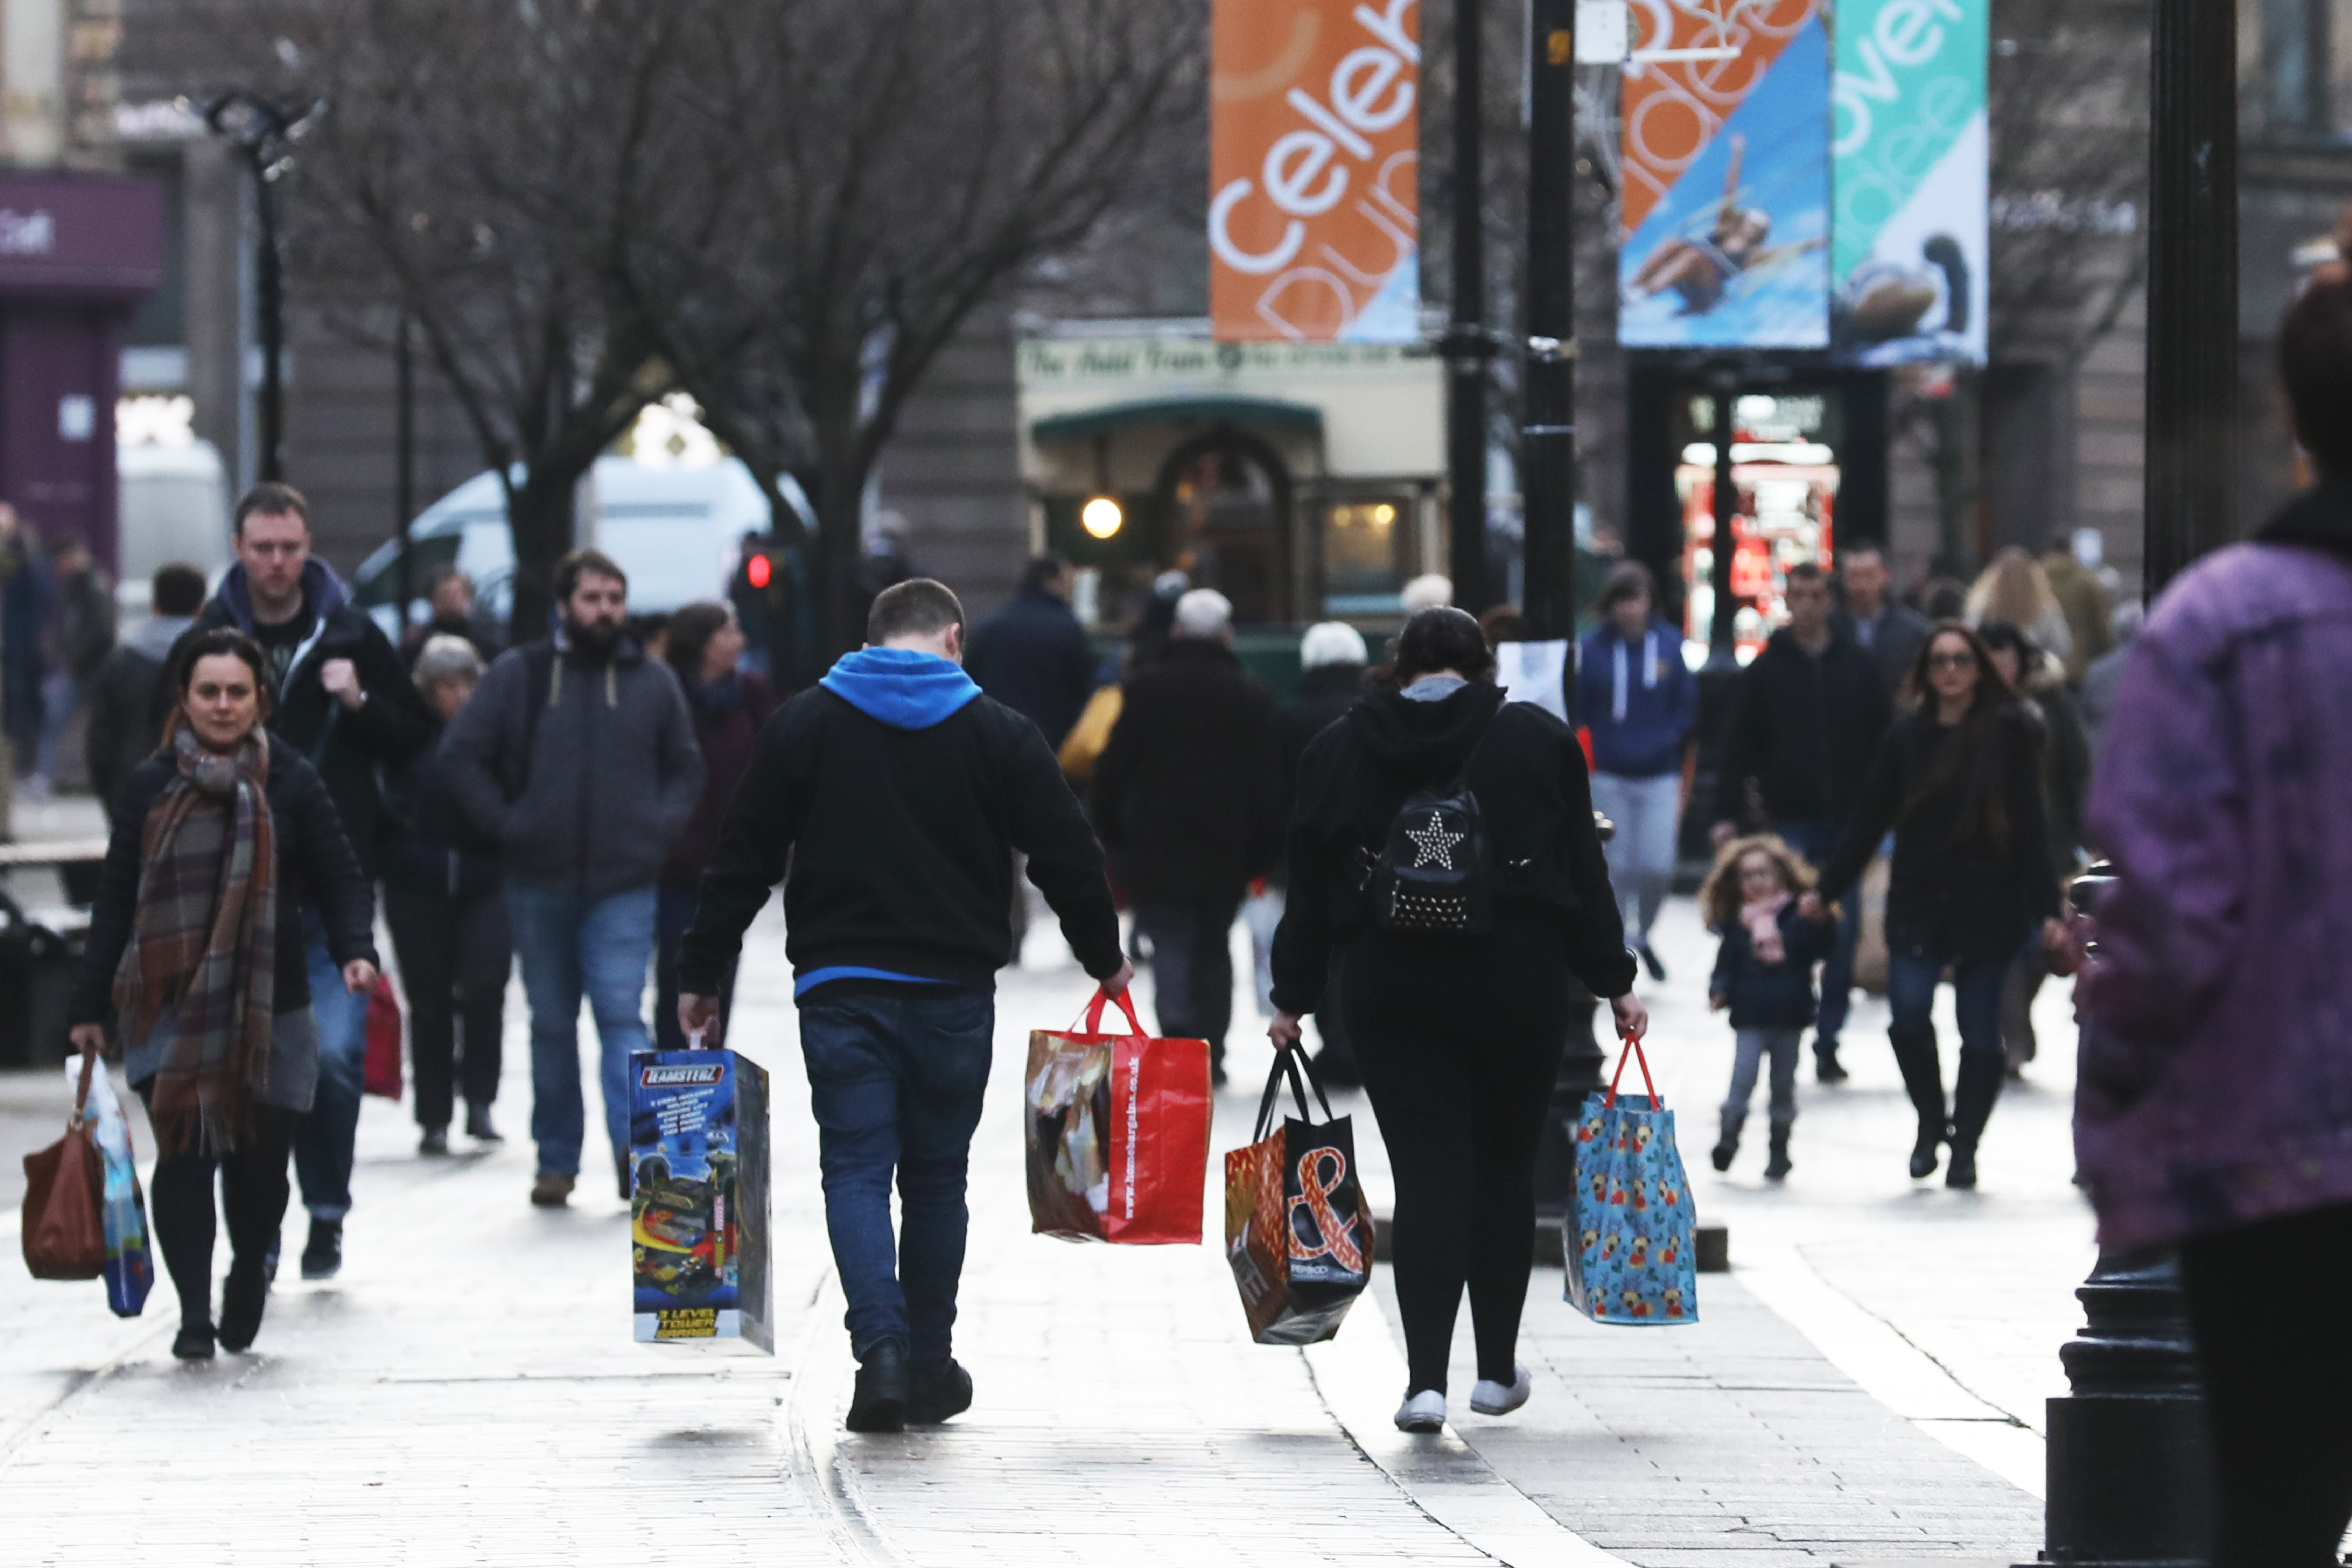 Our lead letter writer says we'll need to find another use for town centres as traditional shopping is in terminal decline.